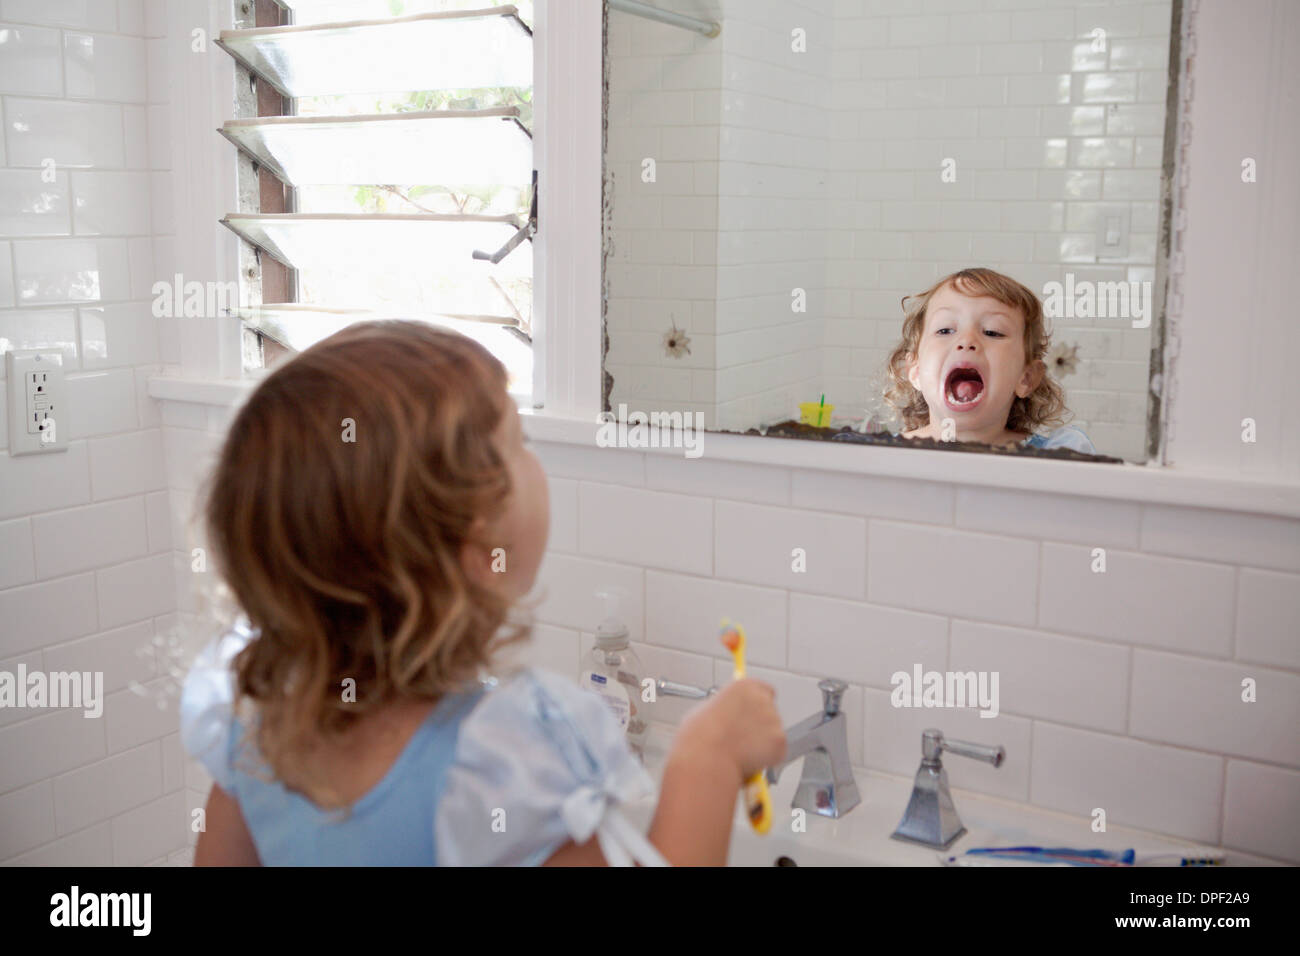 Female toddler looking in mirror cleaning teeth - Stock Image